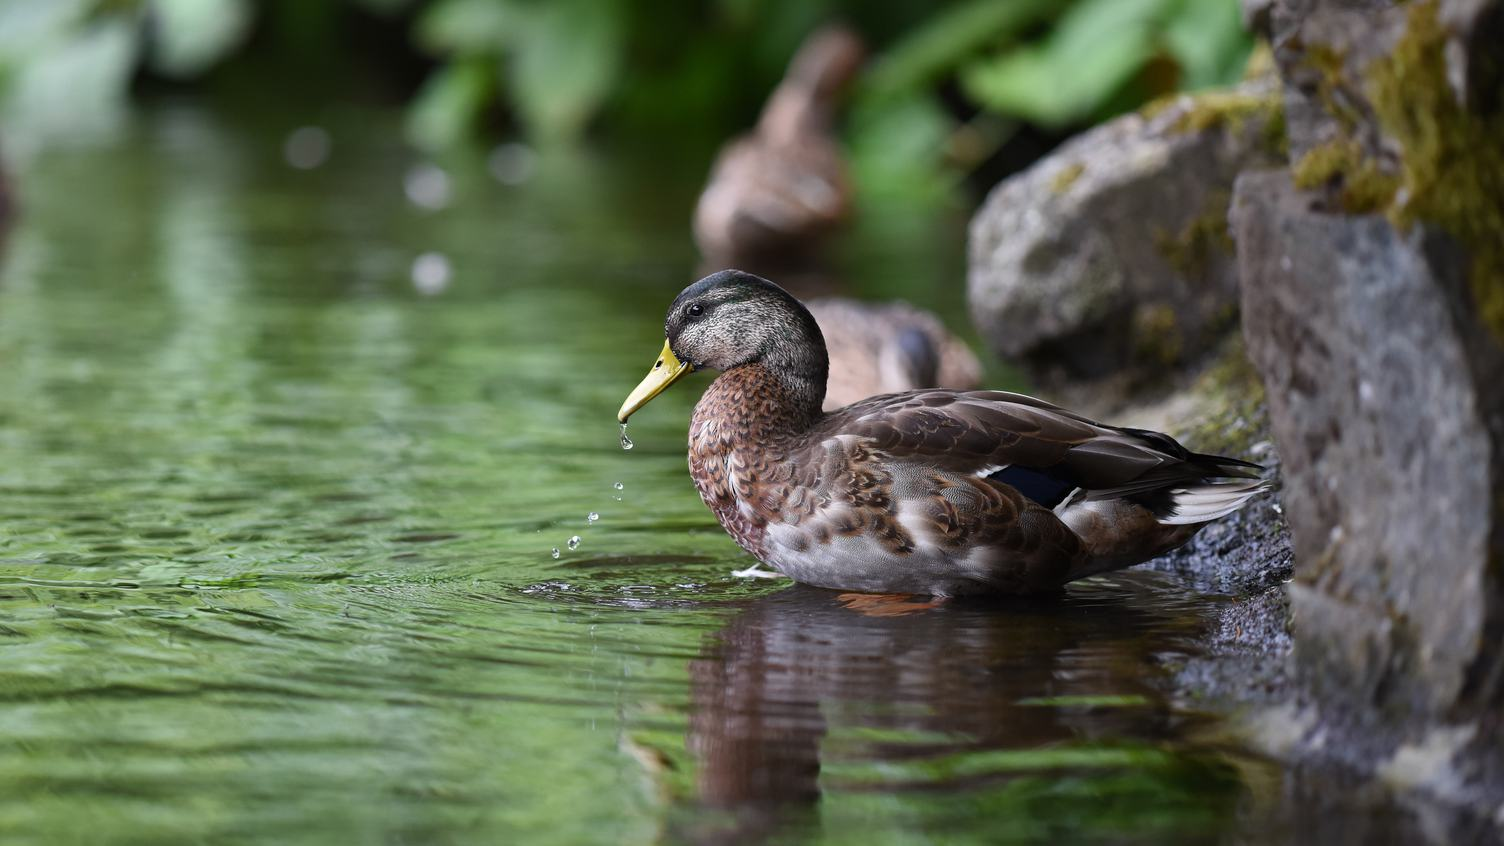 Portrait of a Female Duck on the Water